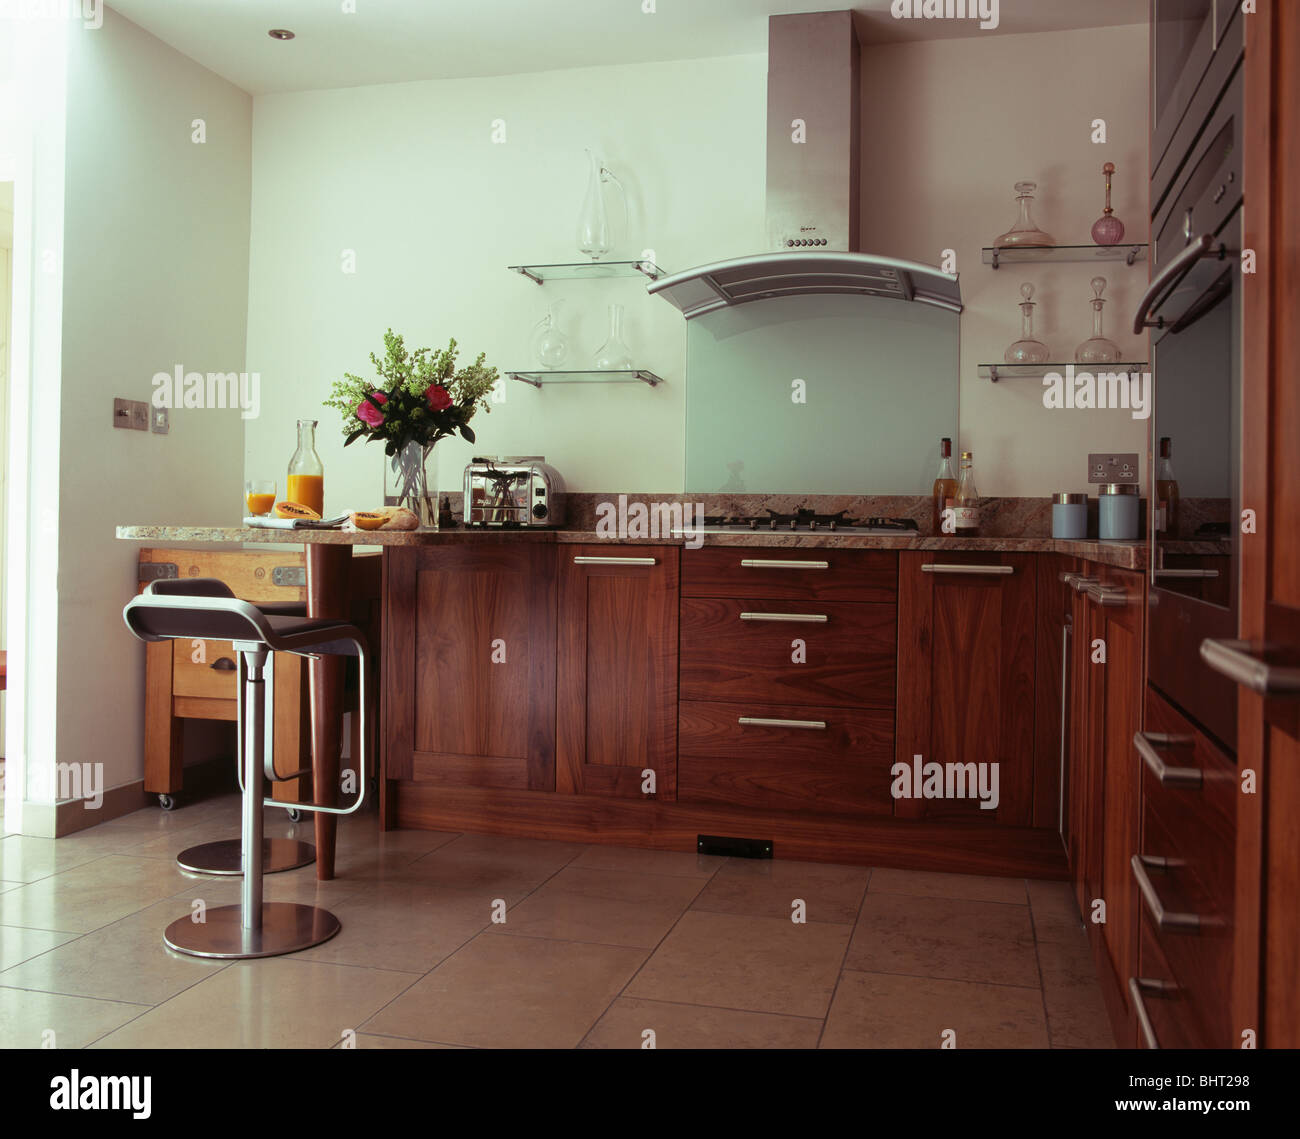 Fabulous Modern Kitchen With Dark Wood Fitted Units And Stainless Caraccident5 Cool Chair Designs And Ideas Caraccident5Info